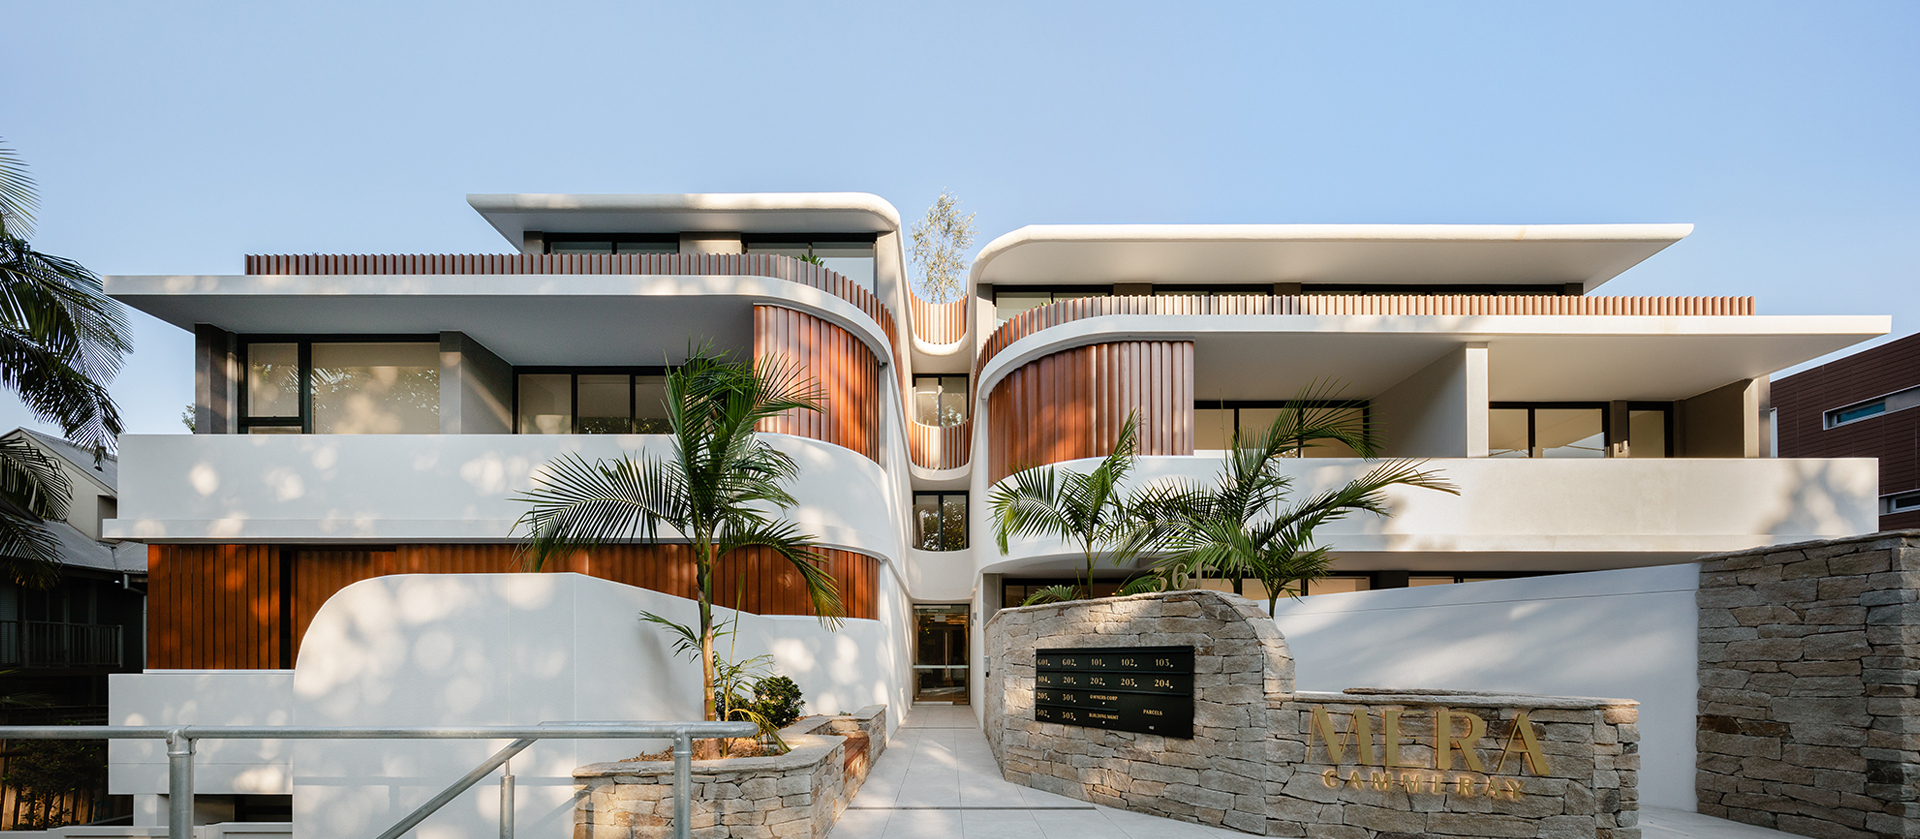 Residents Move into Mera, Cammeray's Prestigious New Development